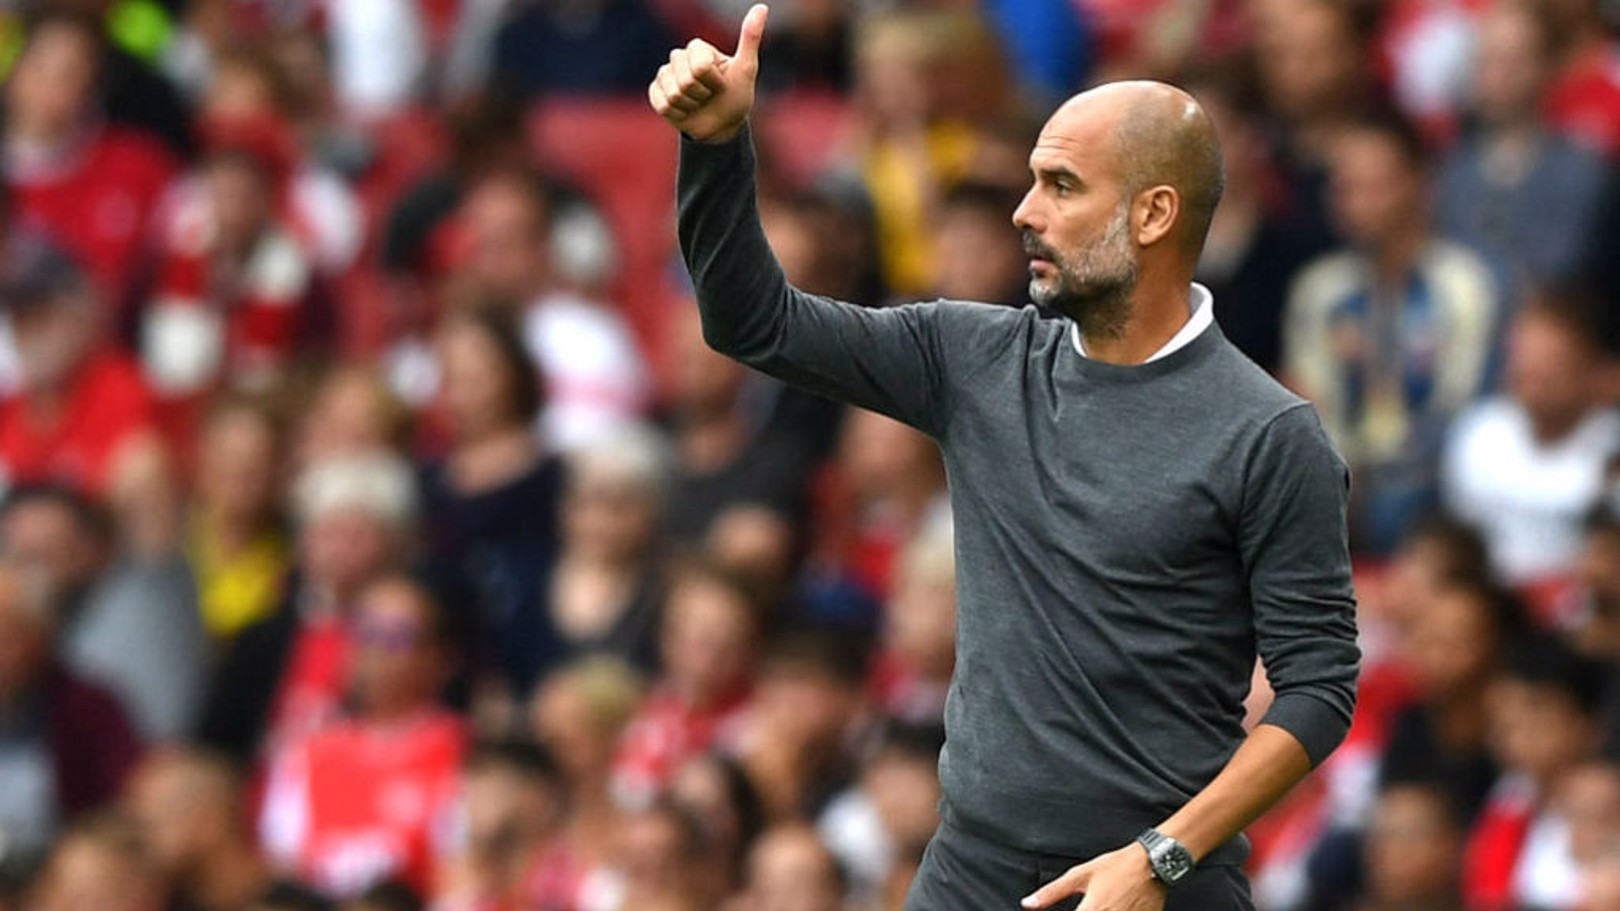 THUMBS UP: Pep's seal of approval.